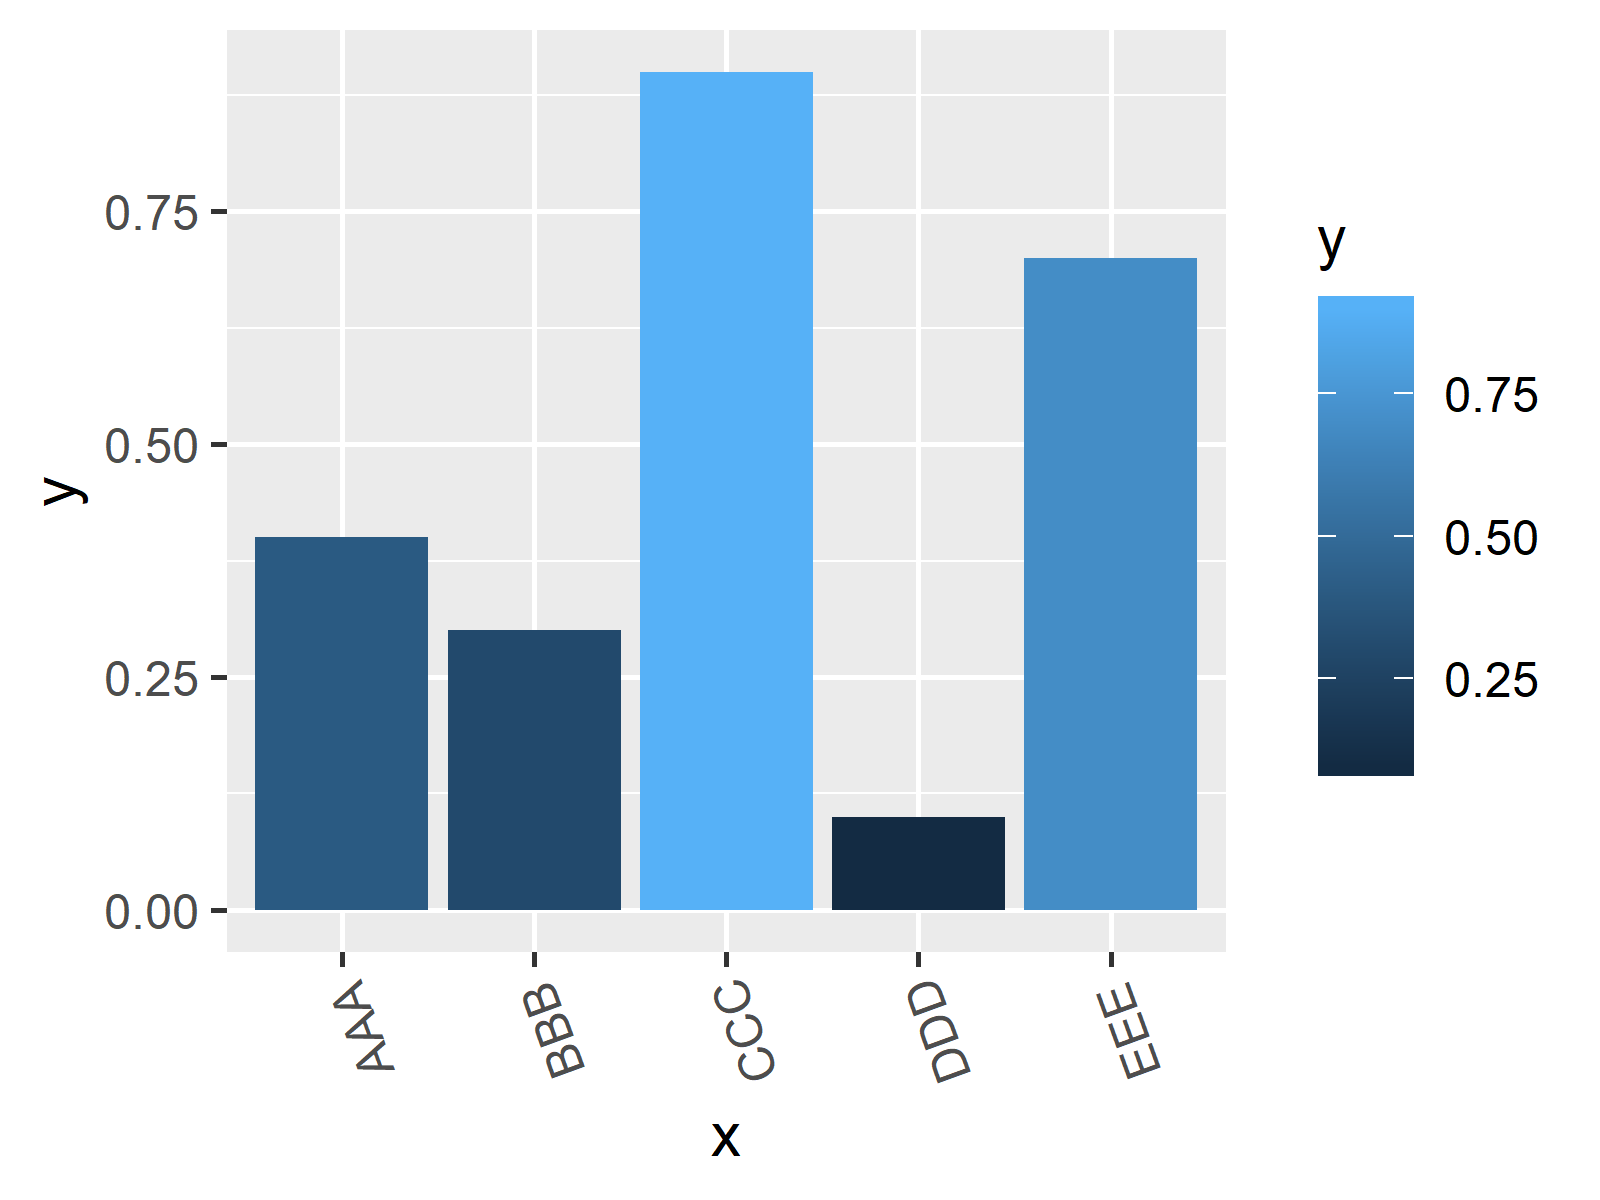 barchart with highly rotated axis labels